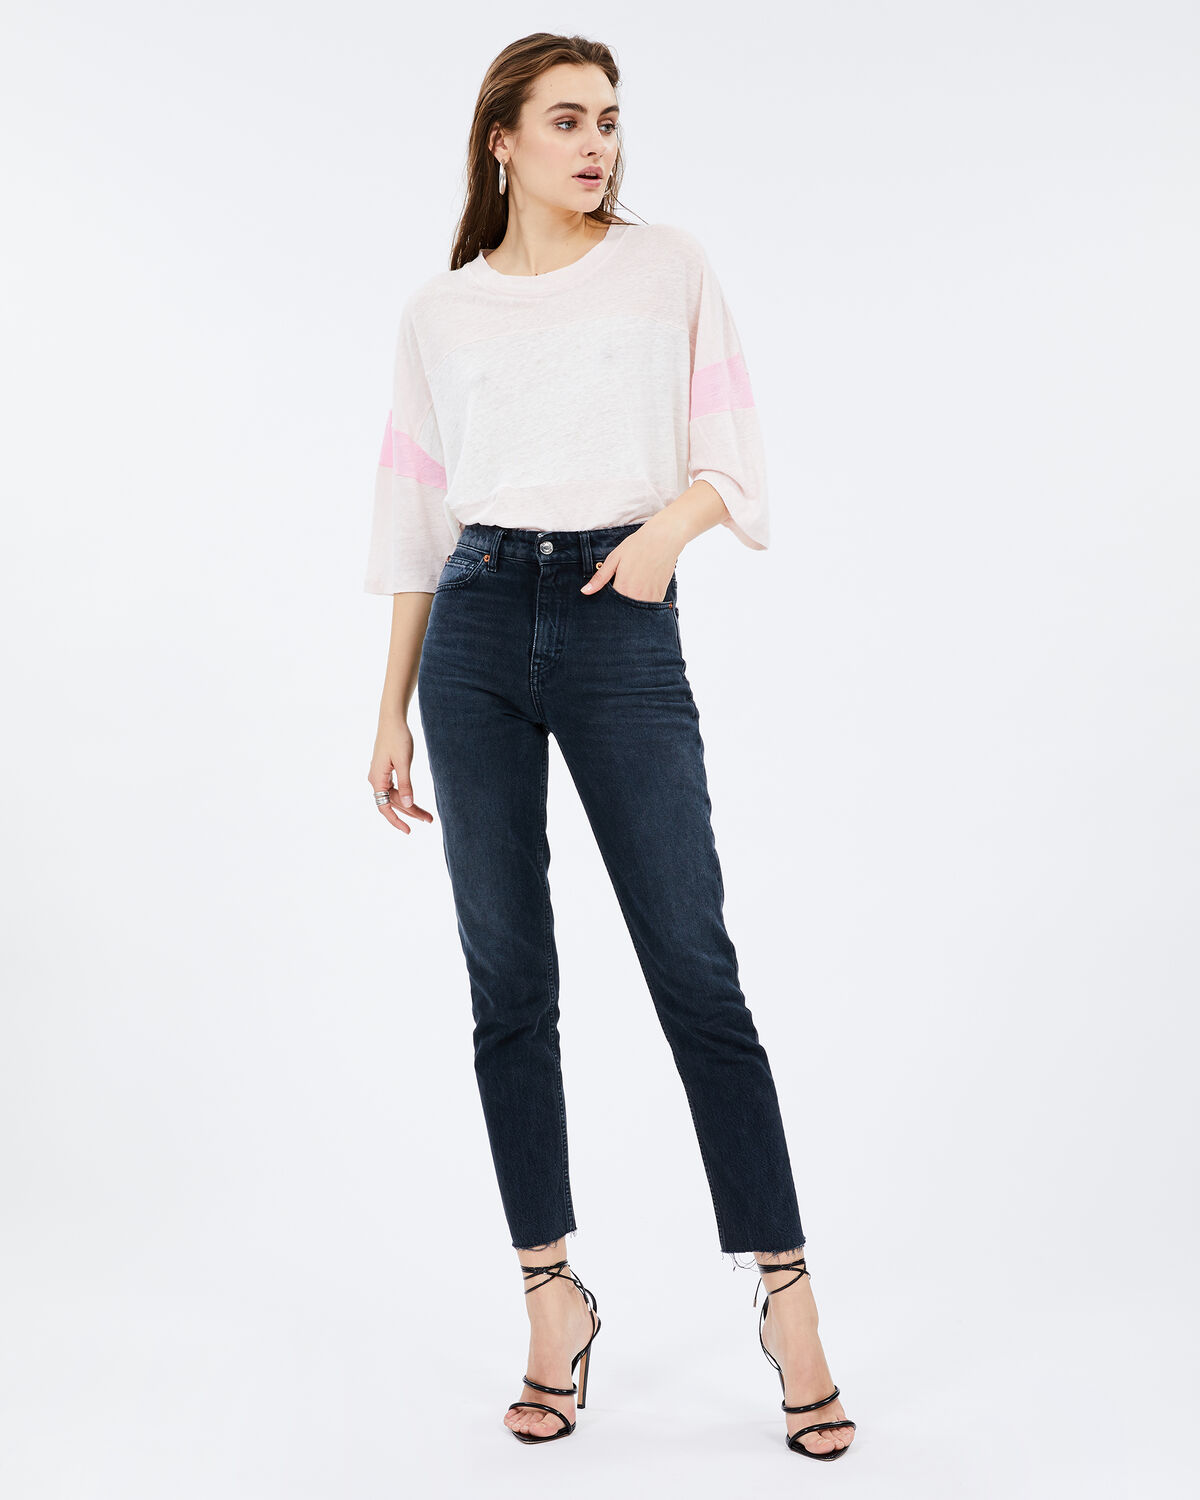 Discreet T-Shirt Cream Pearl And Pink by IRO Paris